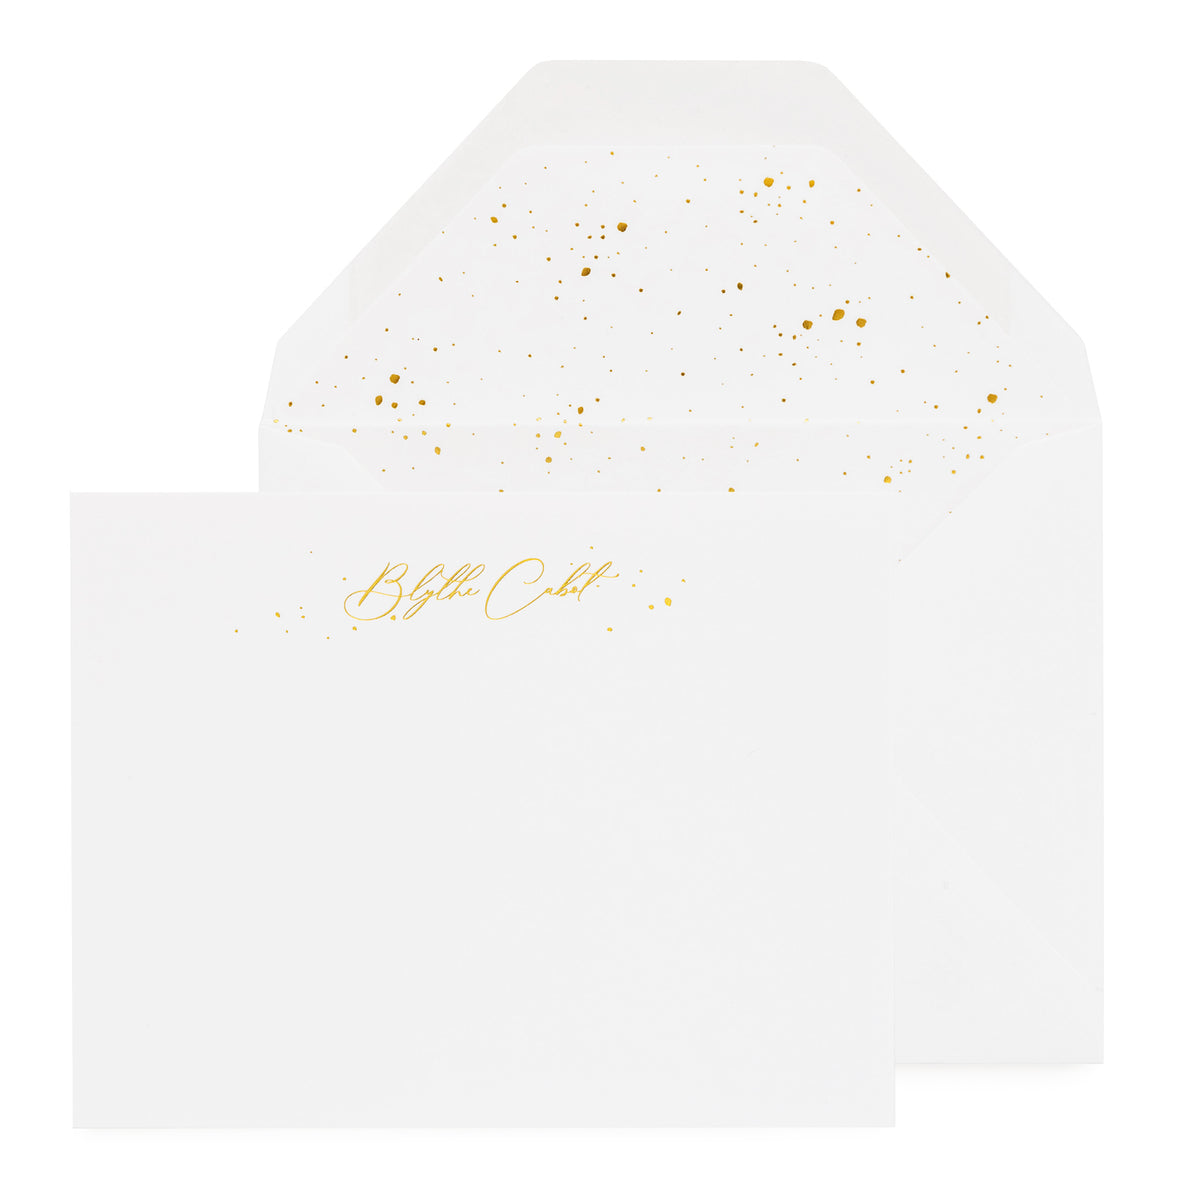 White stationery set with gold foil script name and gold splatter dot envelope liner